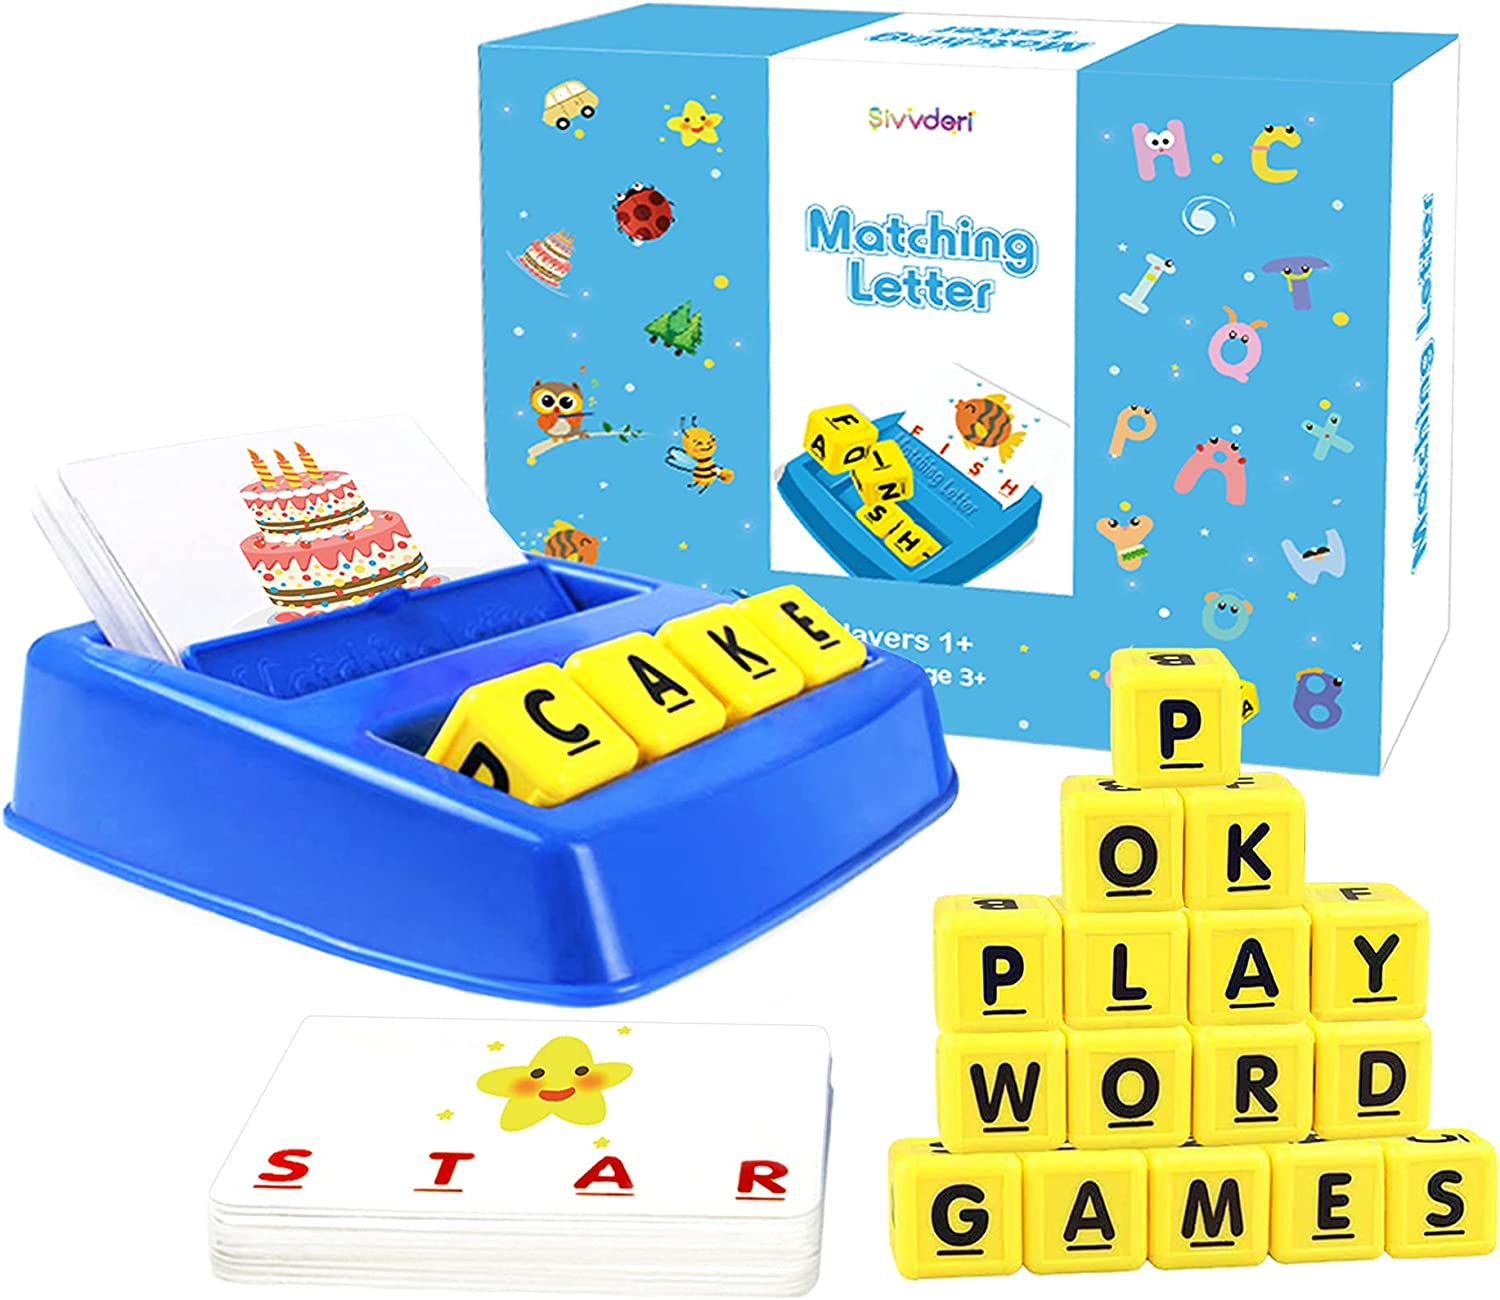 Words Learning Puzzles with 36 Cards /& 12 Letter Cubes for Boys Girls Age 3-8 Year Old Goldboy Matching Letter Game for Kids Education Toys for Kindergarteners Spelling Games for Preschoolers